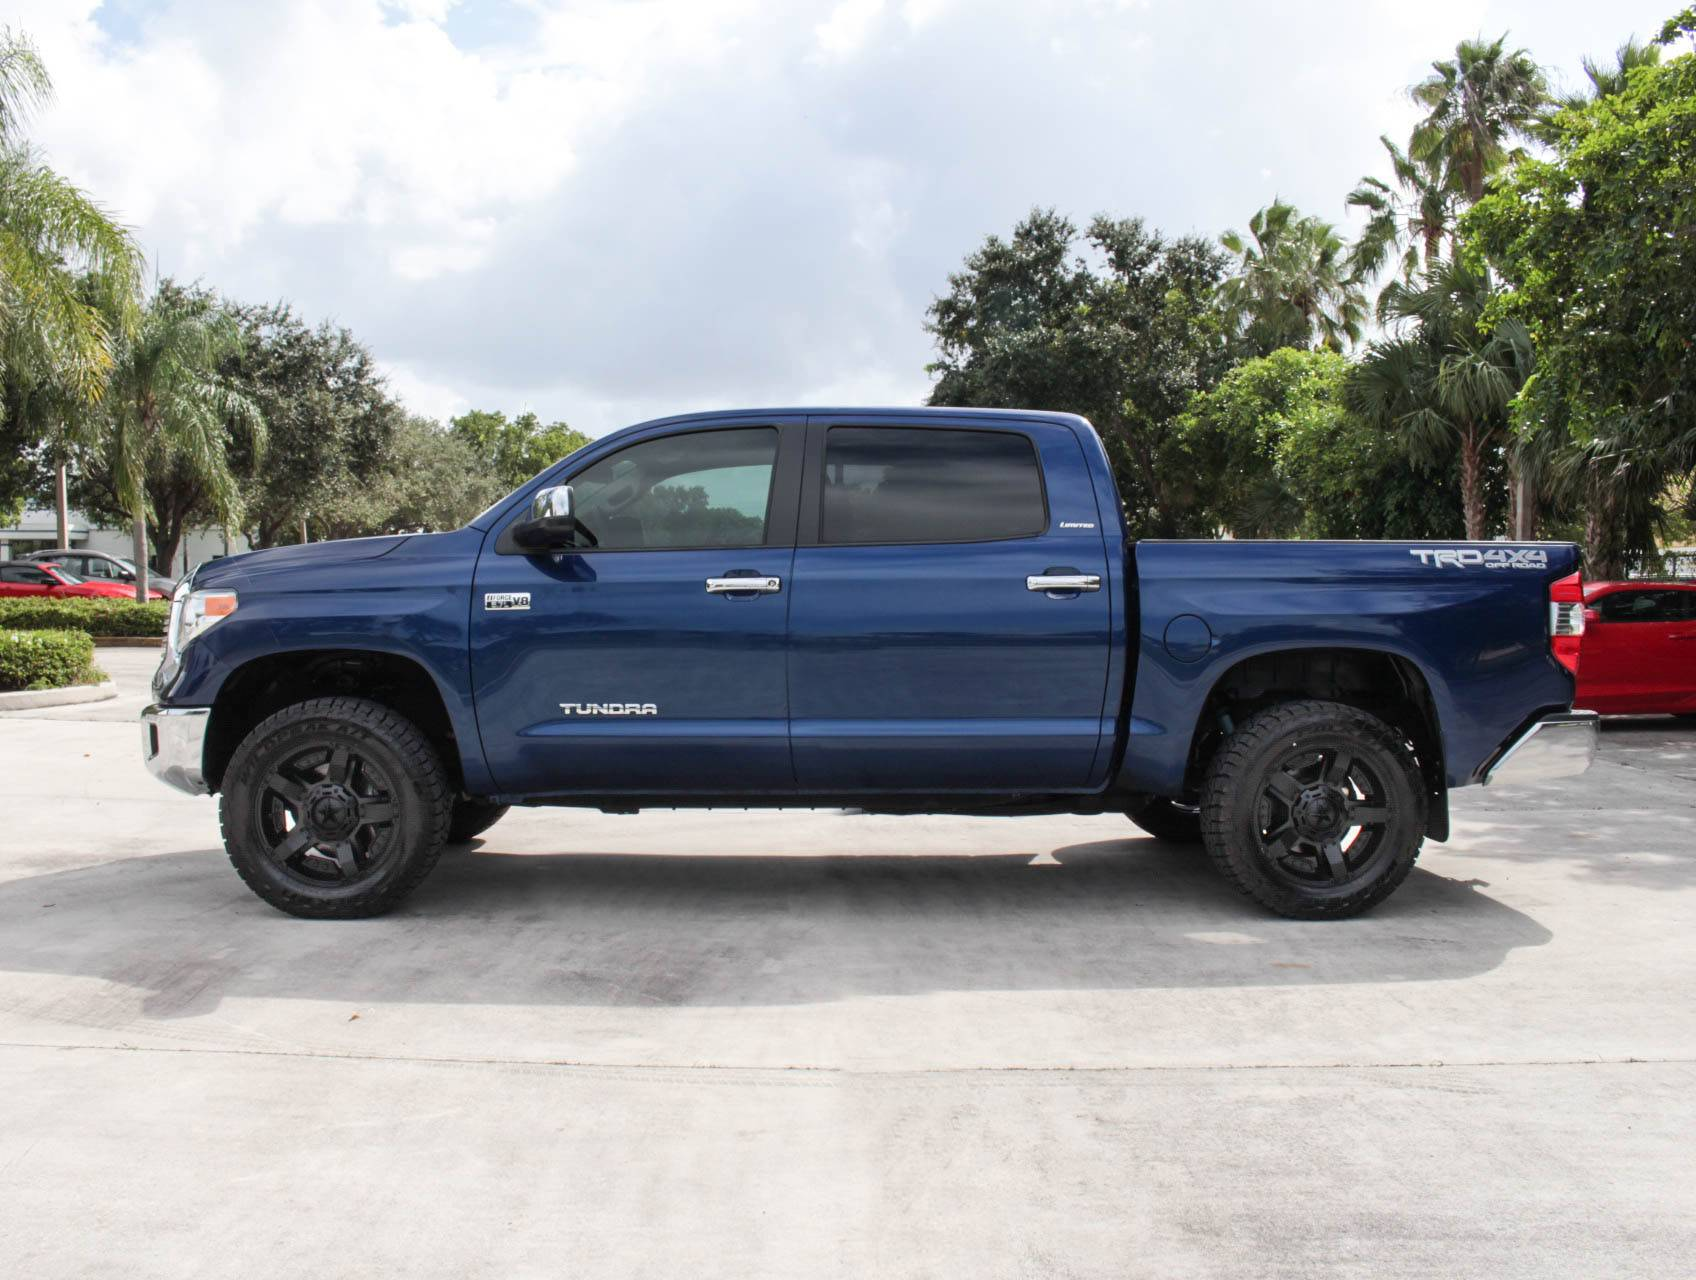 Toyota Tundra For Sale In Maine >> Used 2015 Toyota Tundra Limited Crewmax 4x4 Truck For Sale